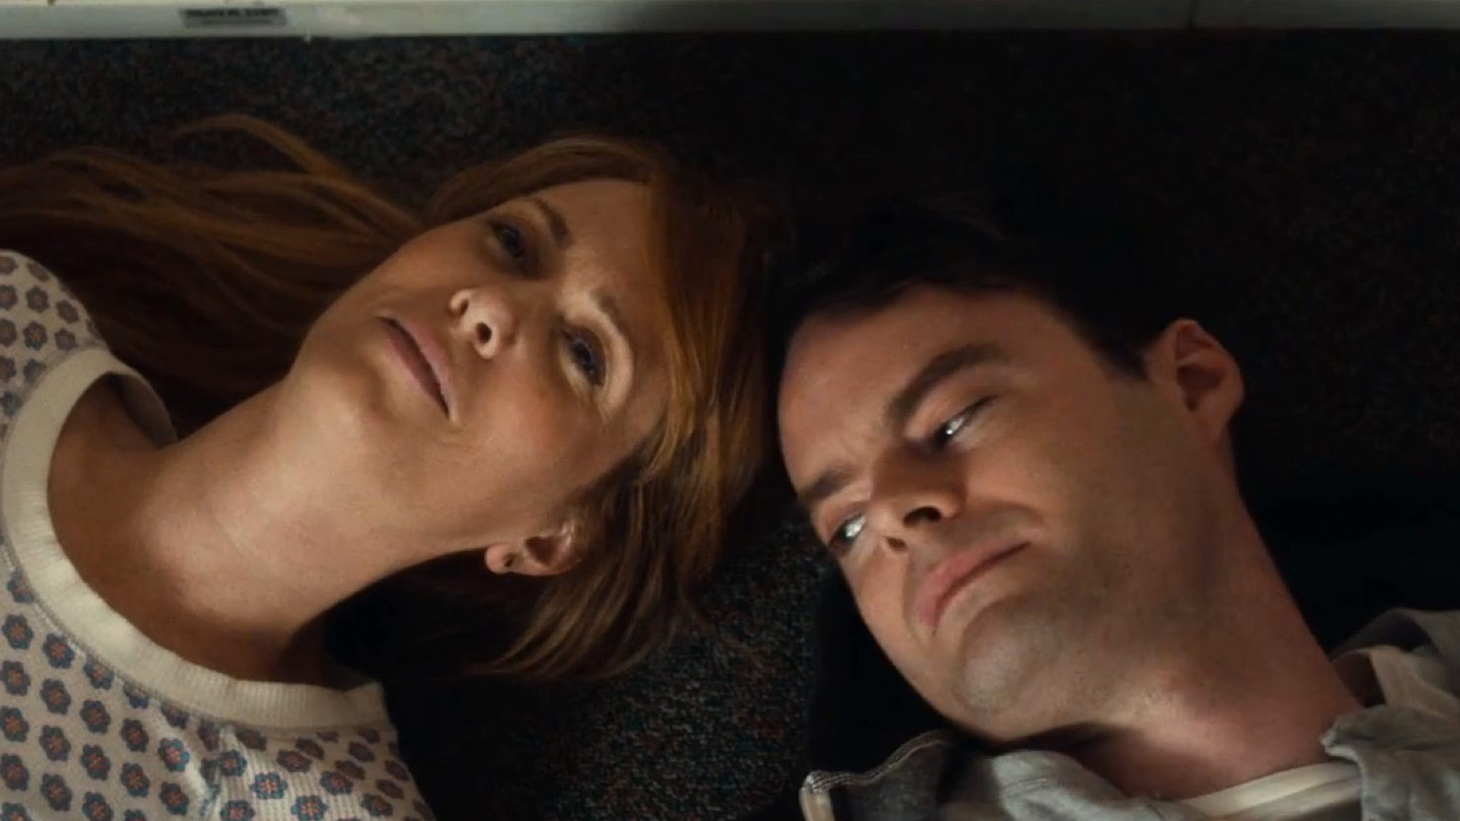 Two luminaries of Saturday Night Live are reunited in The Skeleton Twins — Kristen Wiig and Bill Hader. It's hard to say if they give wonderful comic performances with a tragic dimension, or wonderful dramatic performances with a comic dimension.